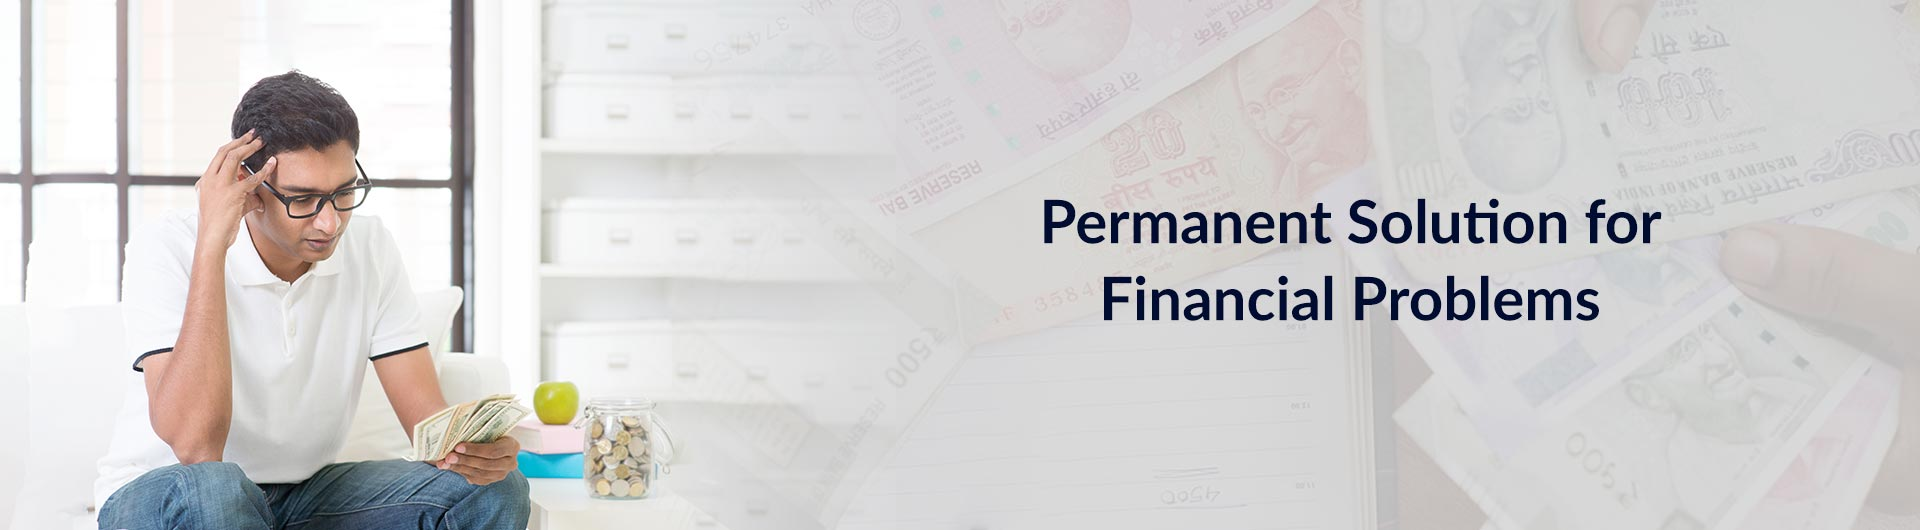 Permanent Solution for Financial Problems